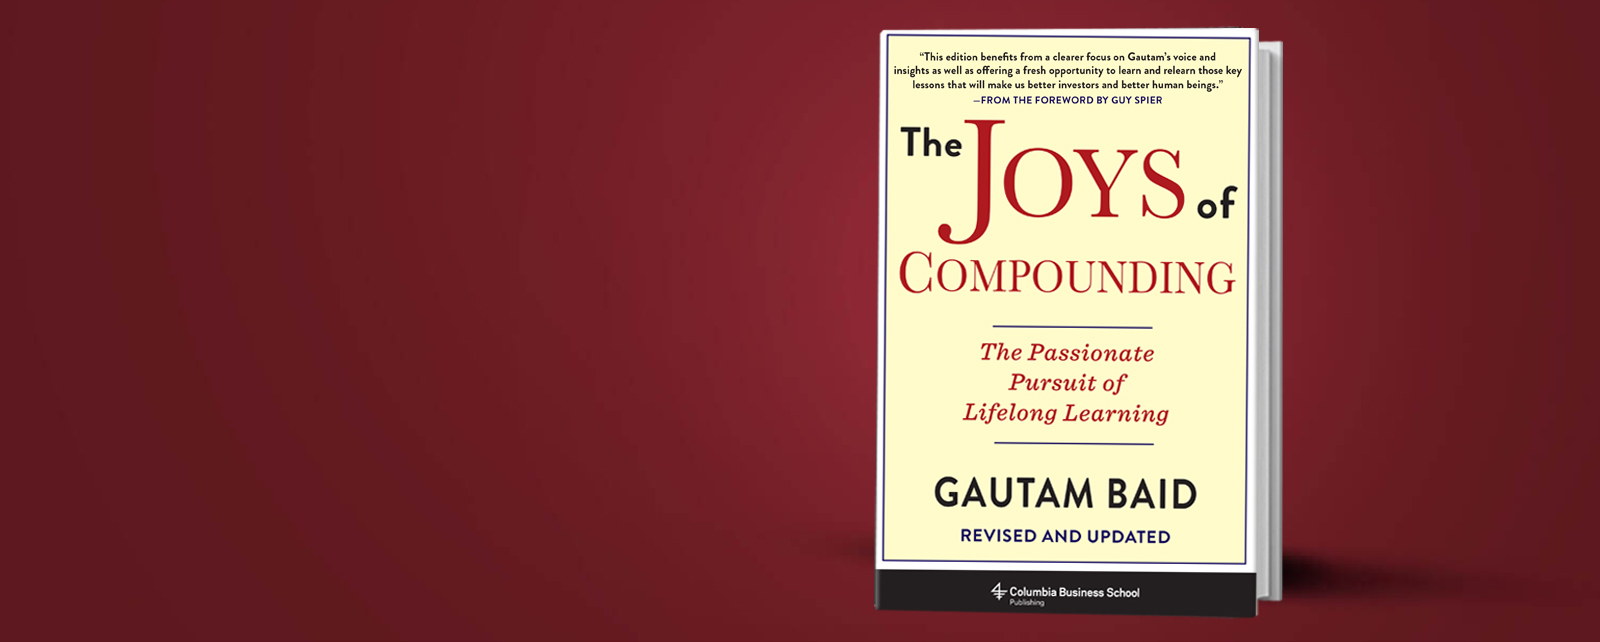 The joys of compounding gautam baid